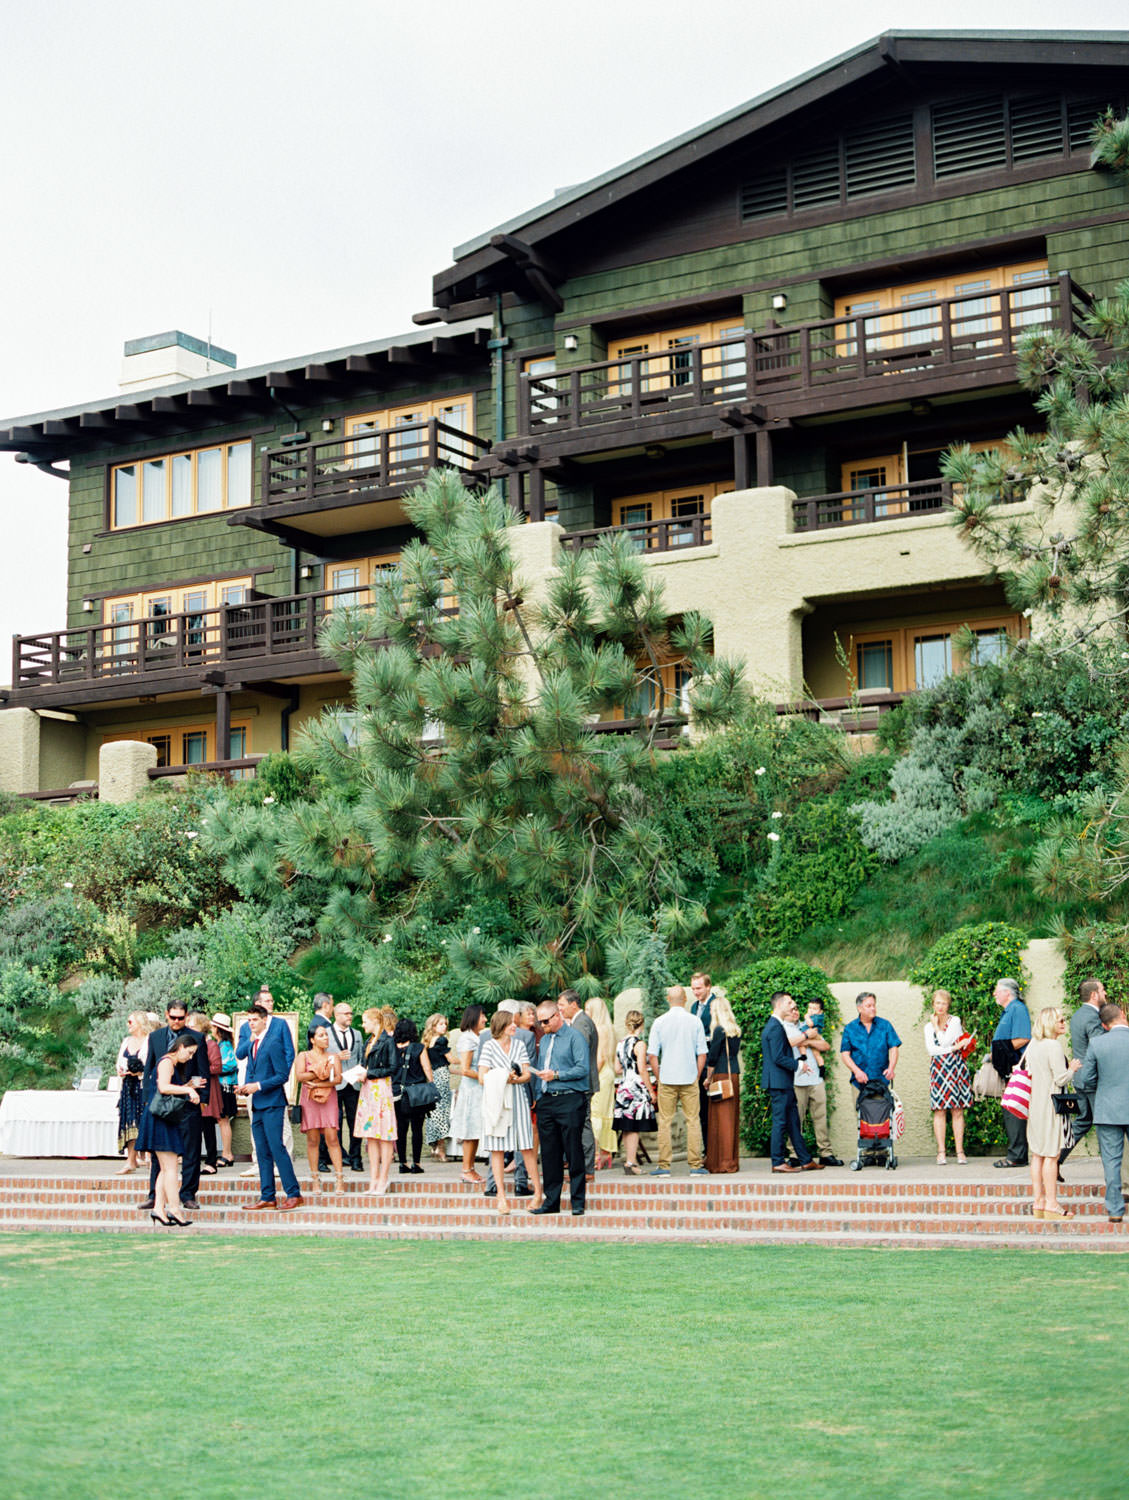 Guests during cocktail hour outside at a rustic upscale venue in San Diego, Lodge at Torrey Pines wedding, film photography by Cavin Elizabeth Photography